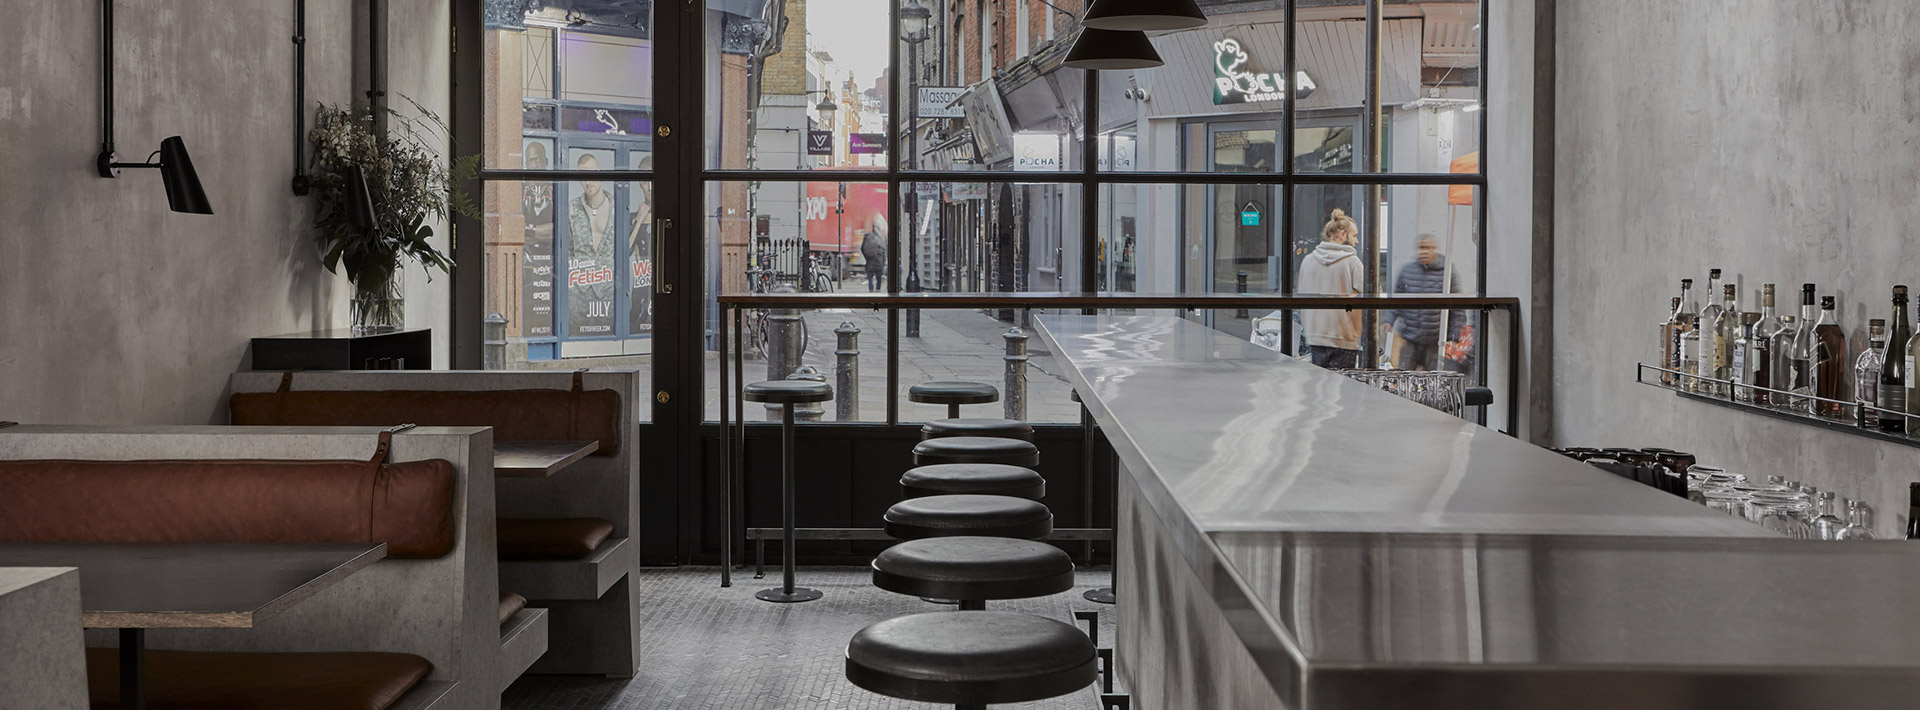 All of that brutalist restaurant @ SOHO: a color palette between cement, leather, concrete & black steel is the masterpiece created by Dan Preston @ the Paradise.